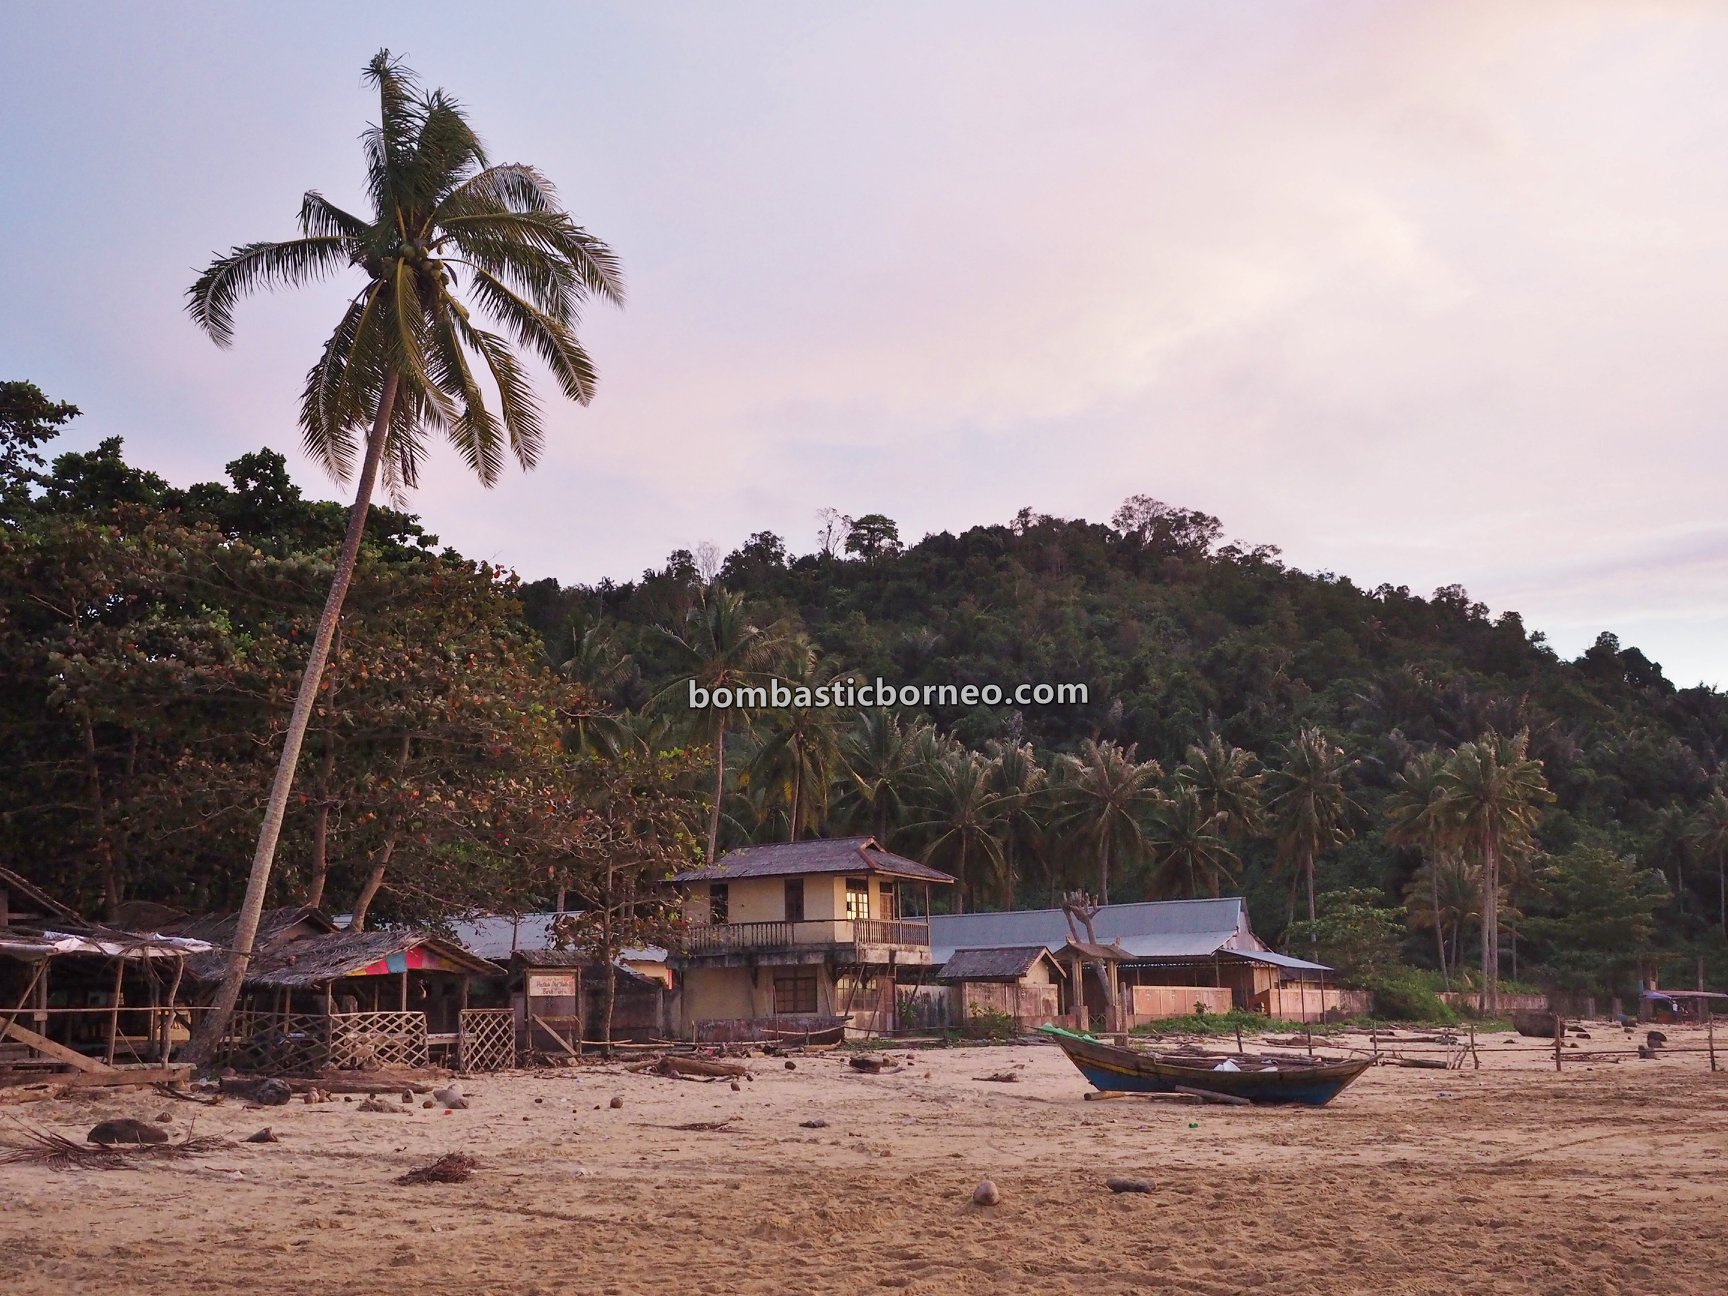 pantai, adventure, nature, Malay fishing village, Kampung Nelayan Melayu, Indonesia, West Kalimantan, Jawai Laut, Obyek wisata, Tourism, backpackers, destination, 穿越婆罗洲游踪, 印尼西加里曼丹, 三发马来渔村